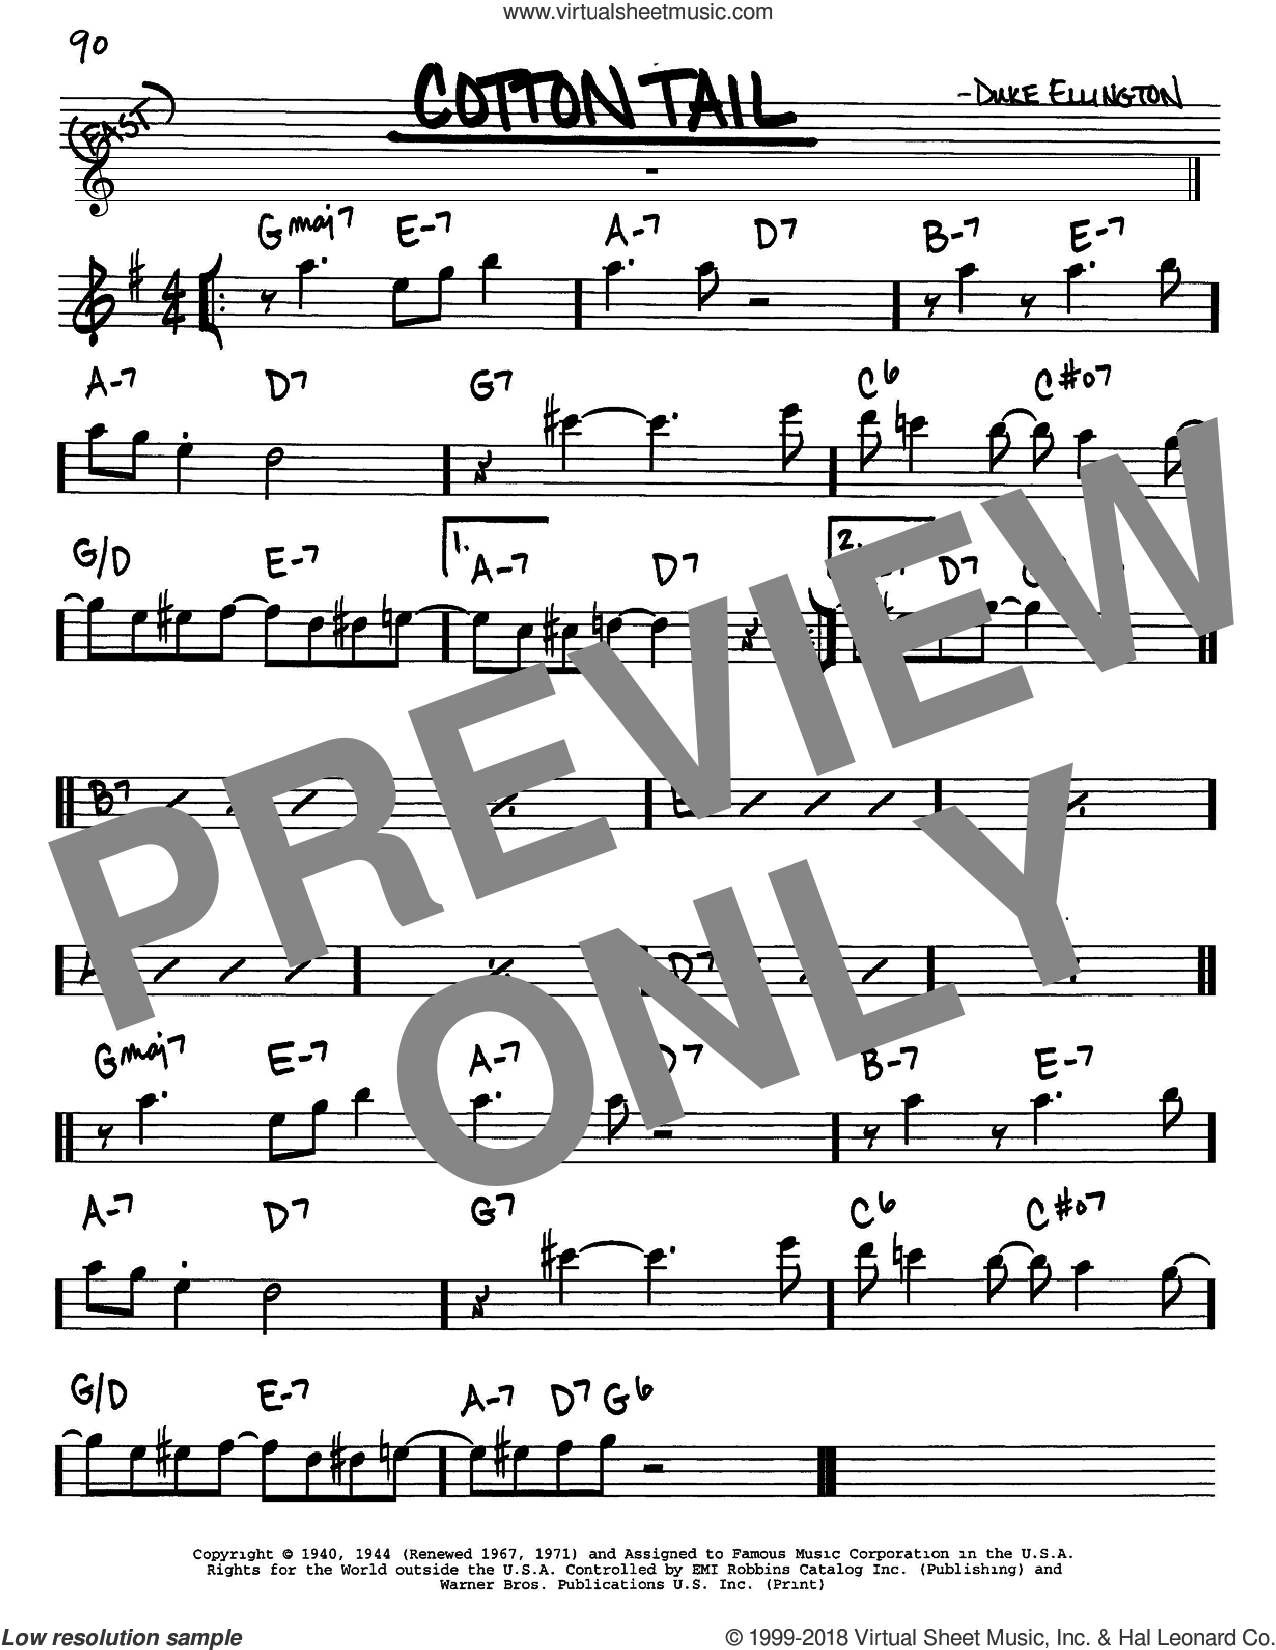 Cotton Tail sheet music for voice and other instruments (Eb) by Duke Ellington